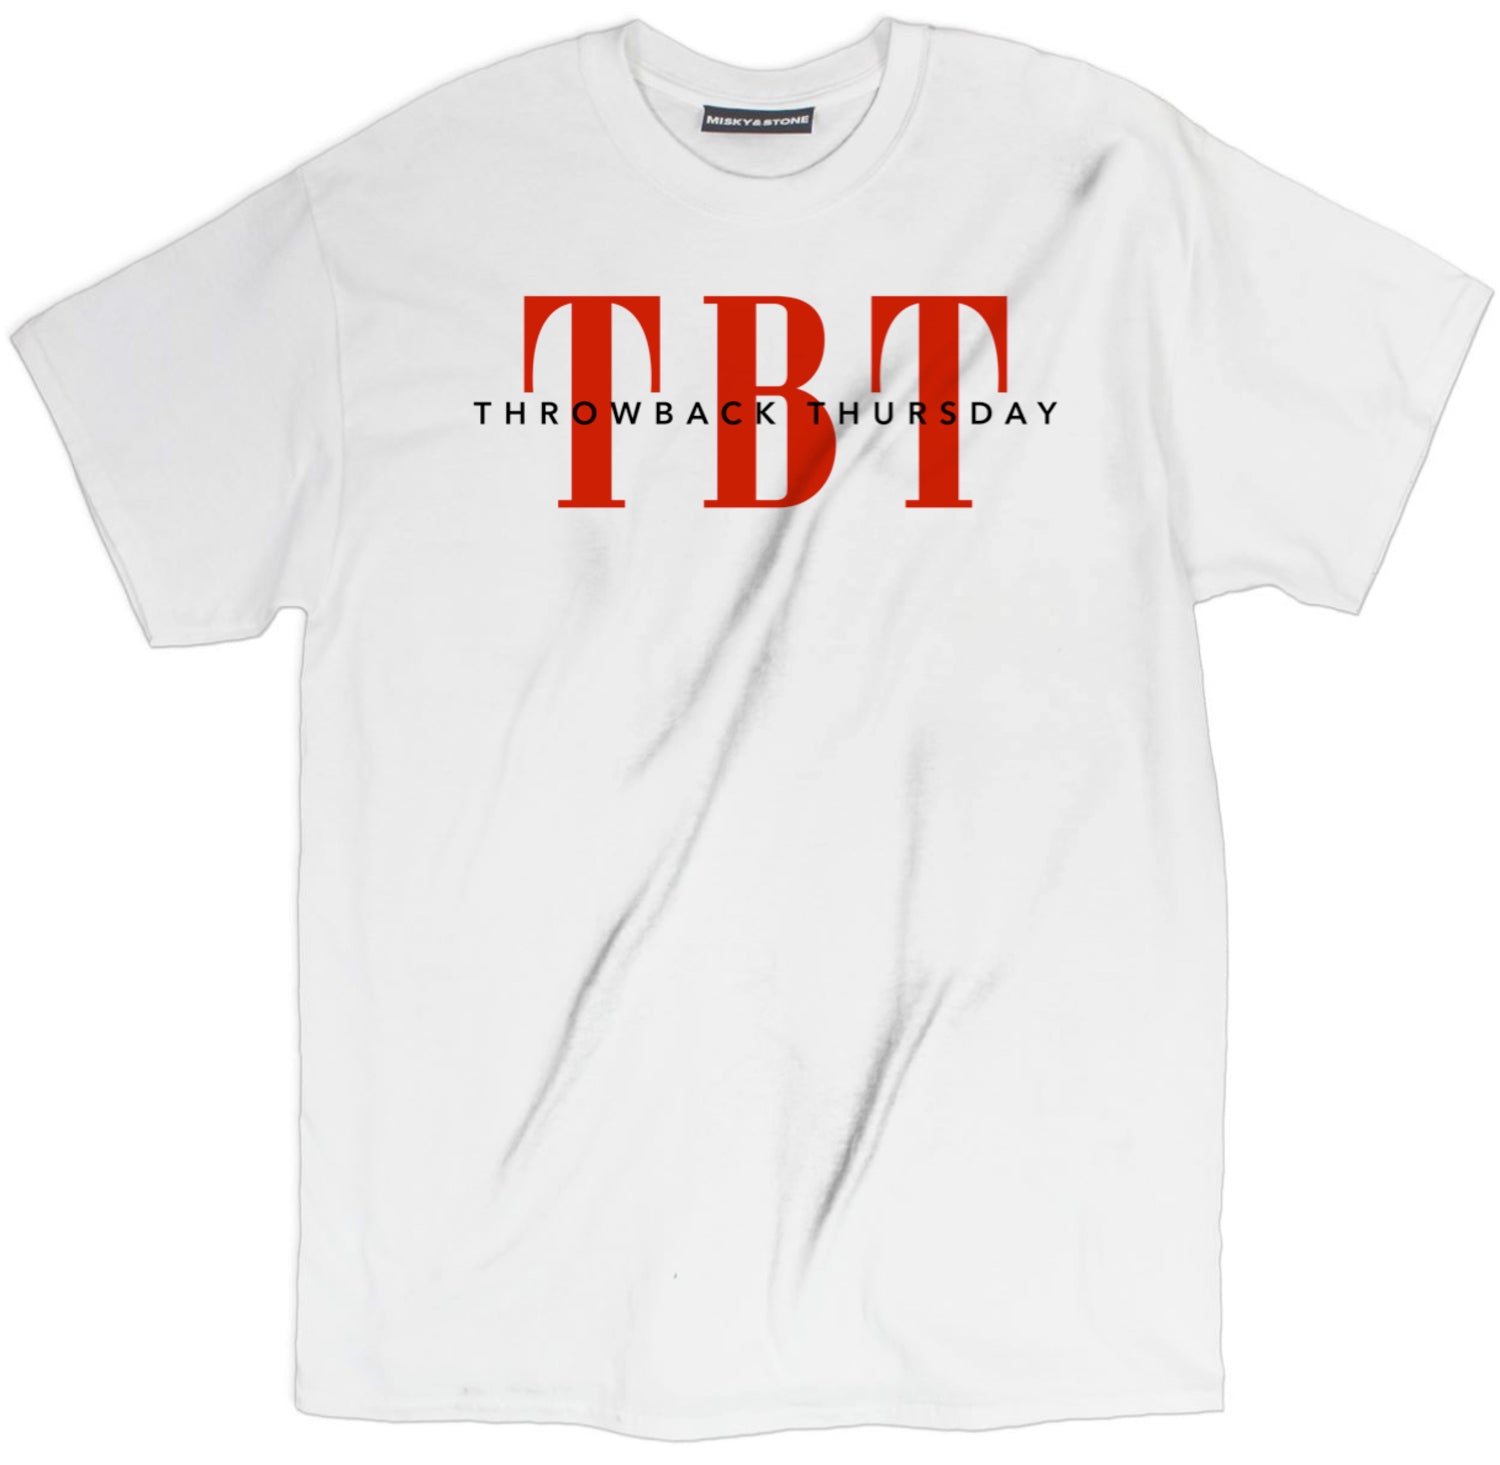 Tbt Throwback Thursday Tee